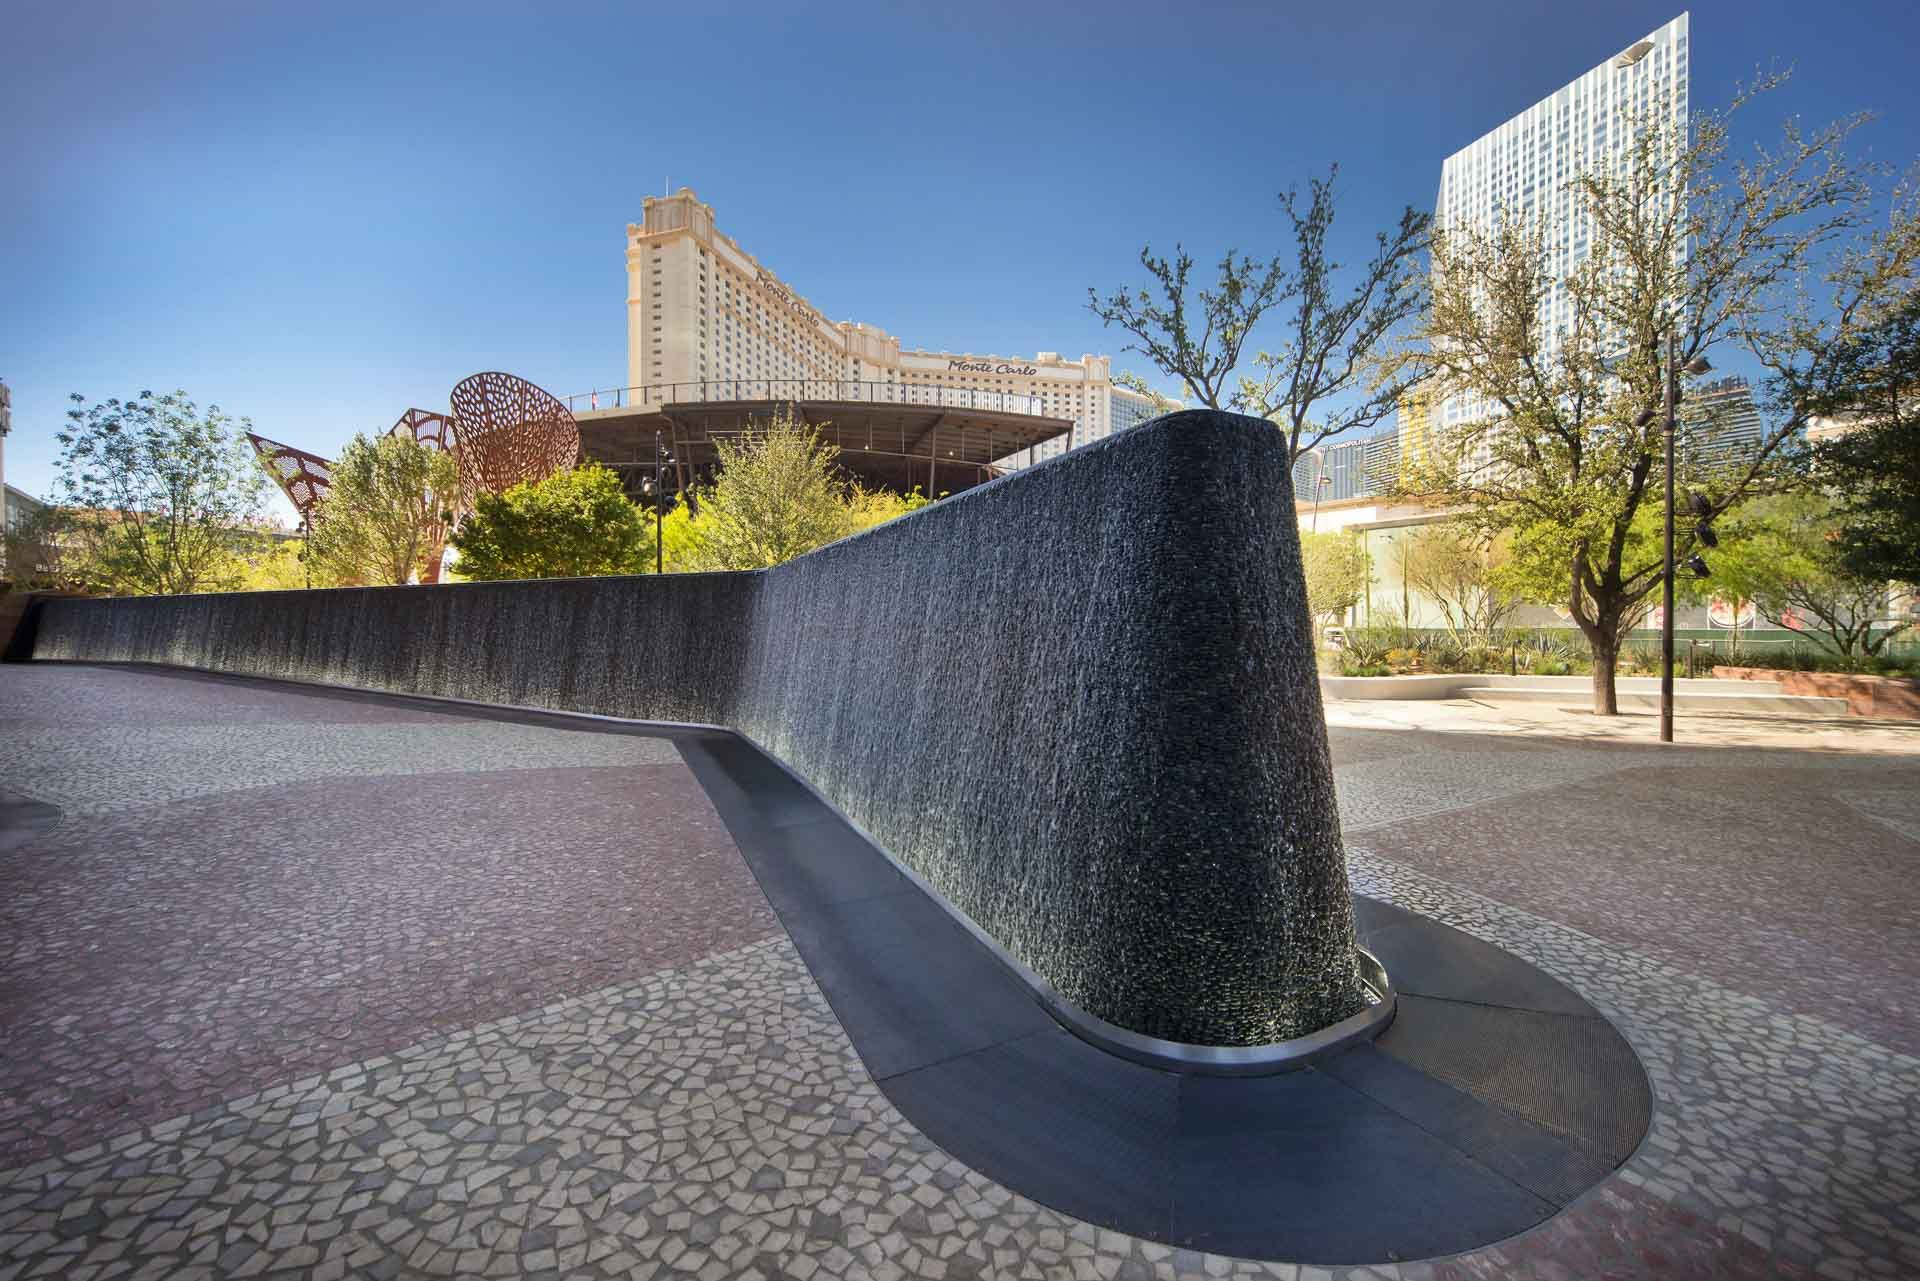 Pin On Outdoor Water Feature